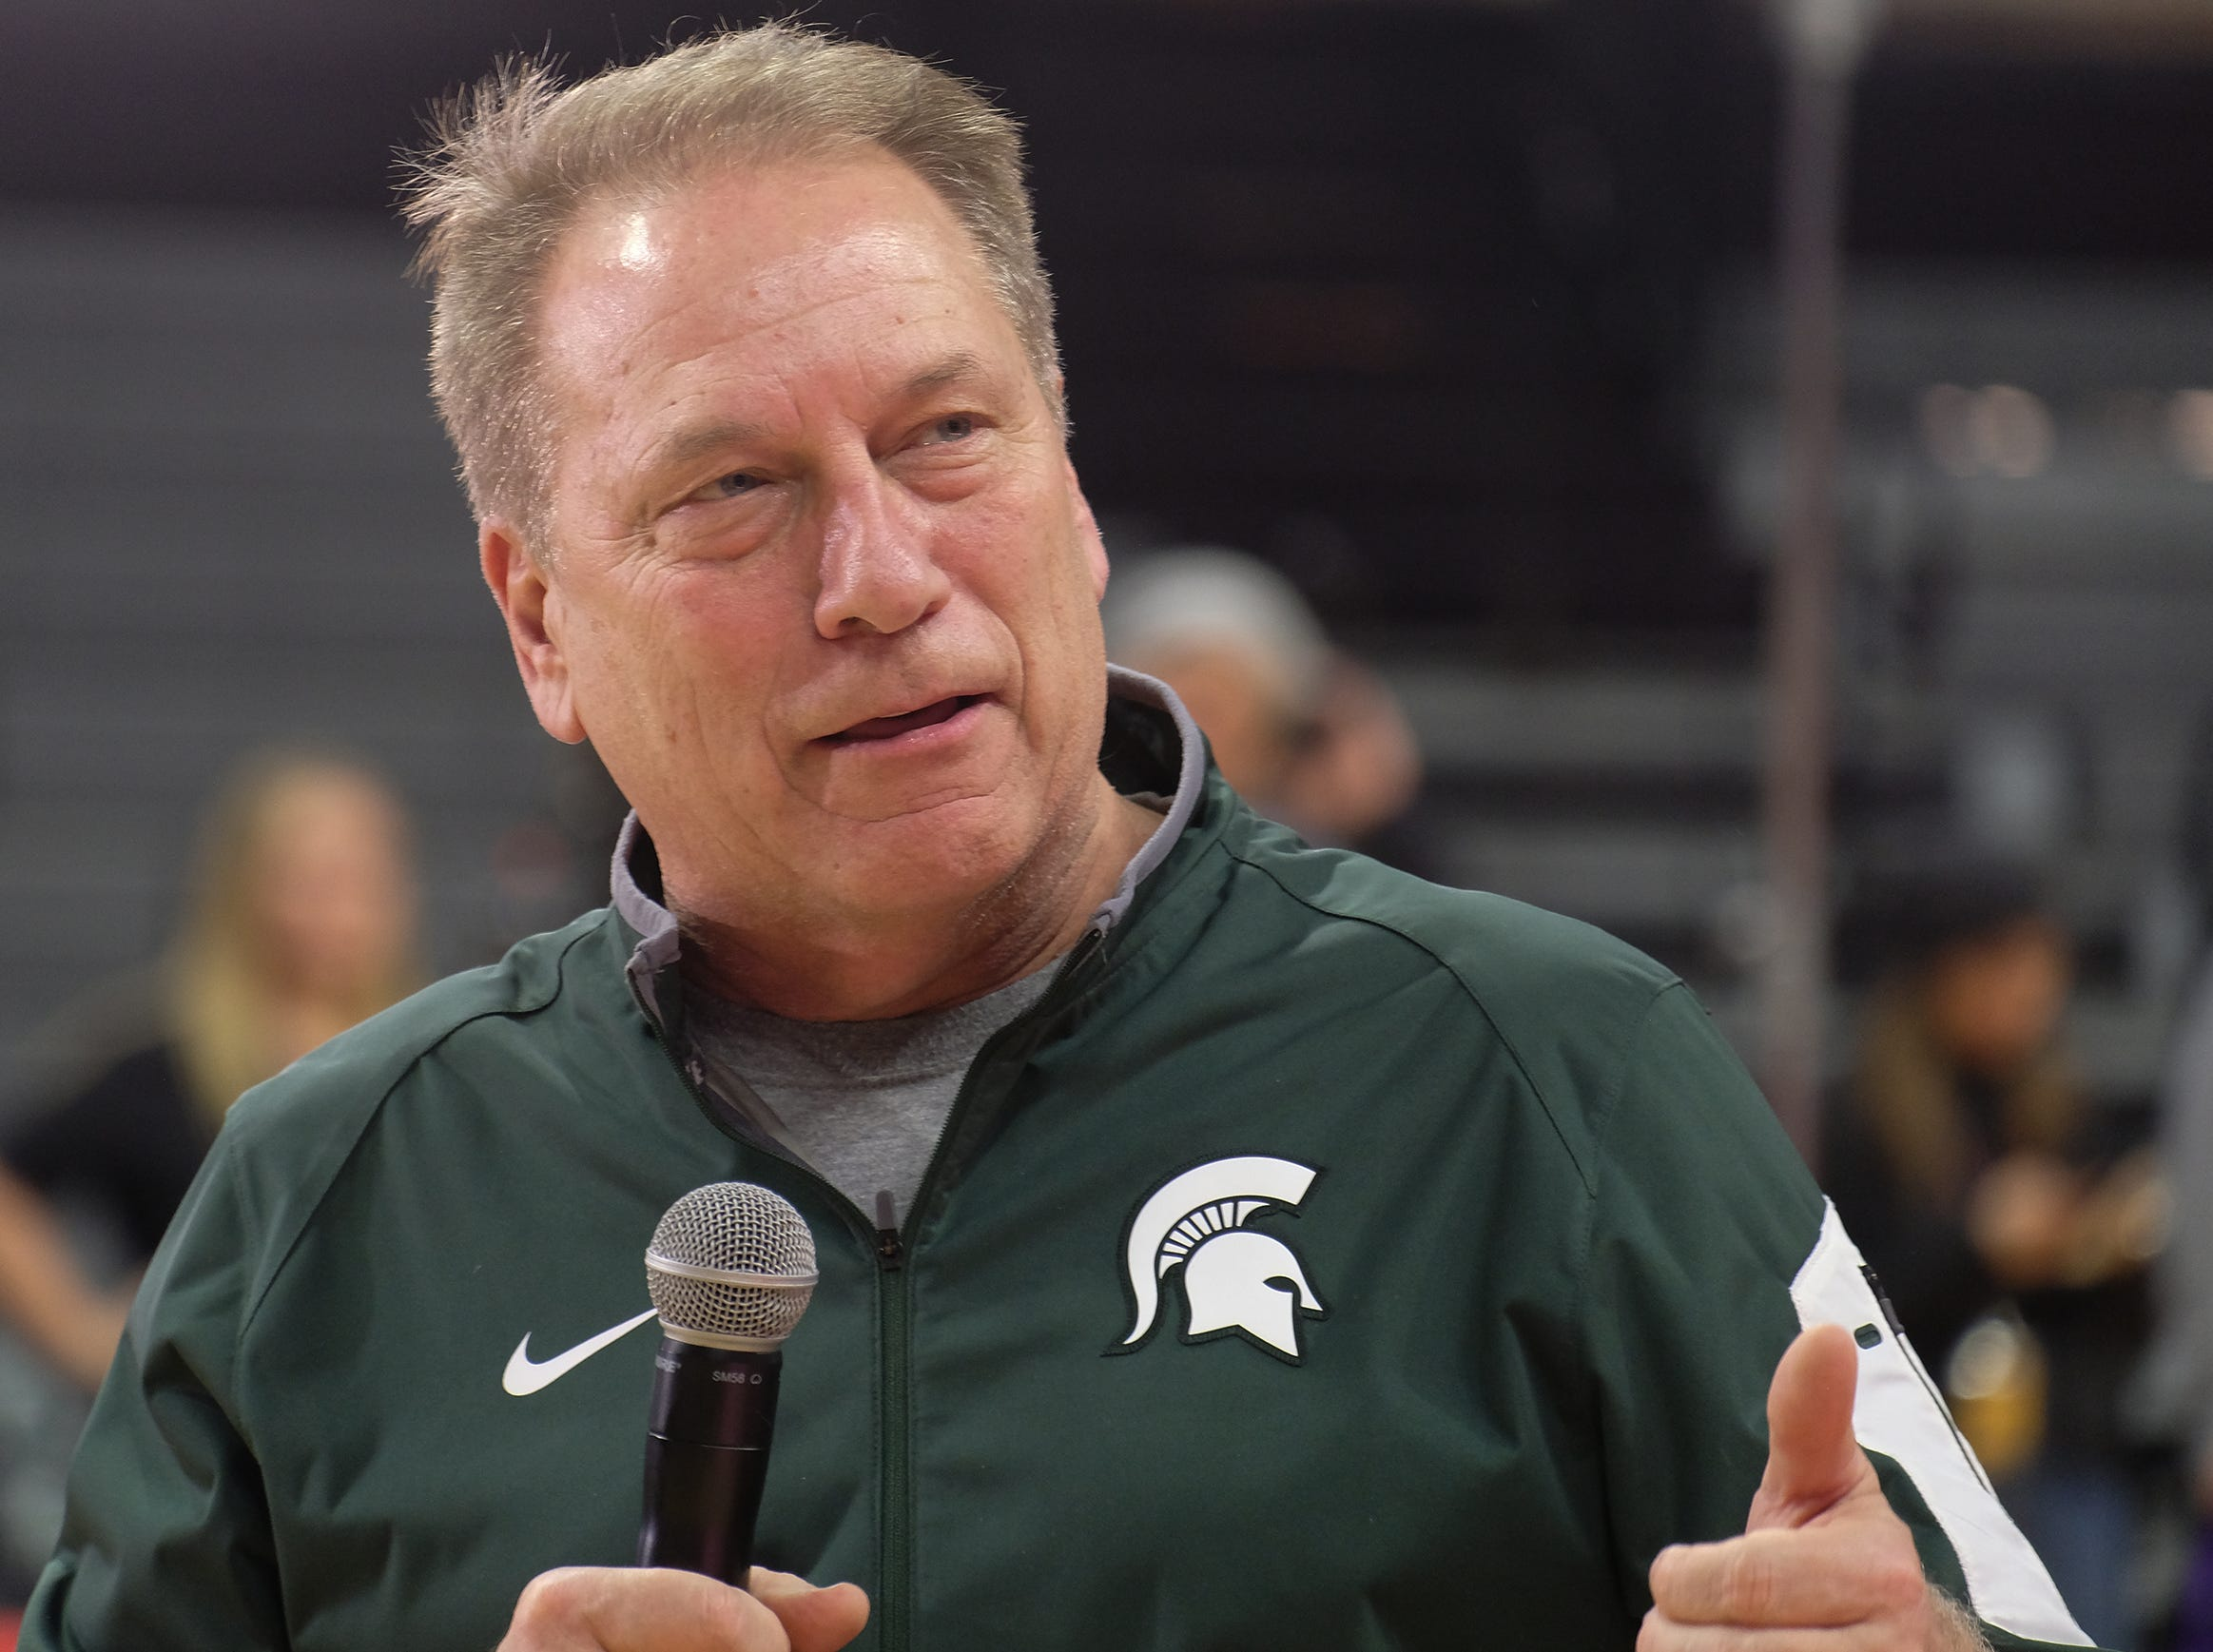 MSU Head Basketball Coach Tom Izzo speaks to the crowd during ESPN College GameDay at the Breslin Center Saturday, Feb. 2, 2019.